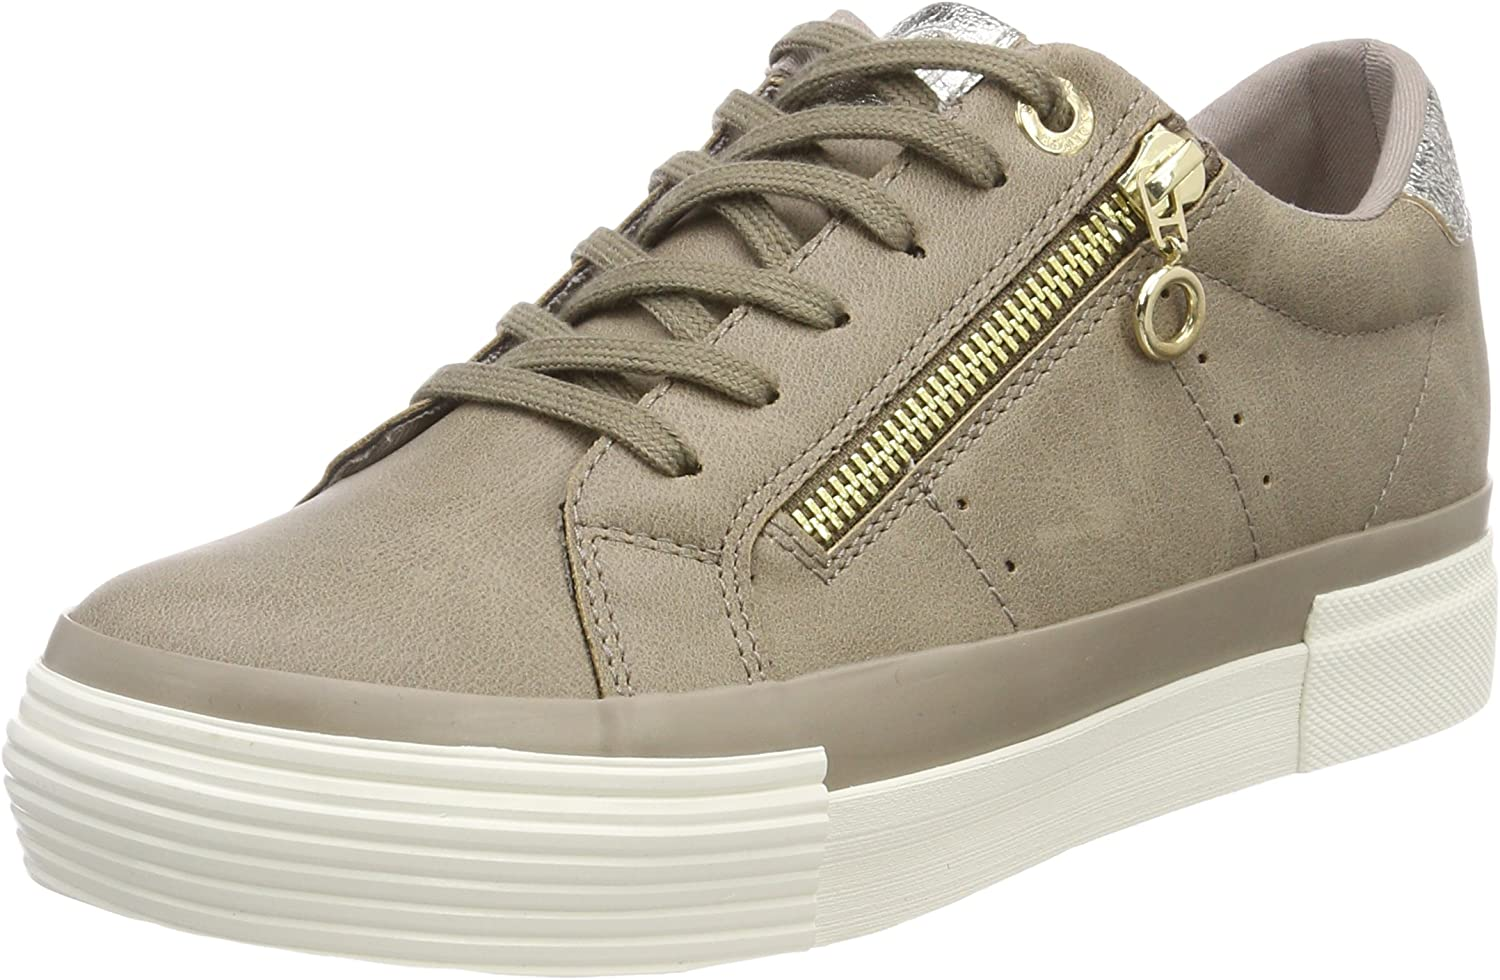 S.Oliver Women's 23634 Low-Top Sneakers, Brown (Pepper), 6 UK